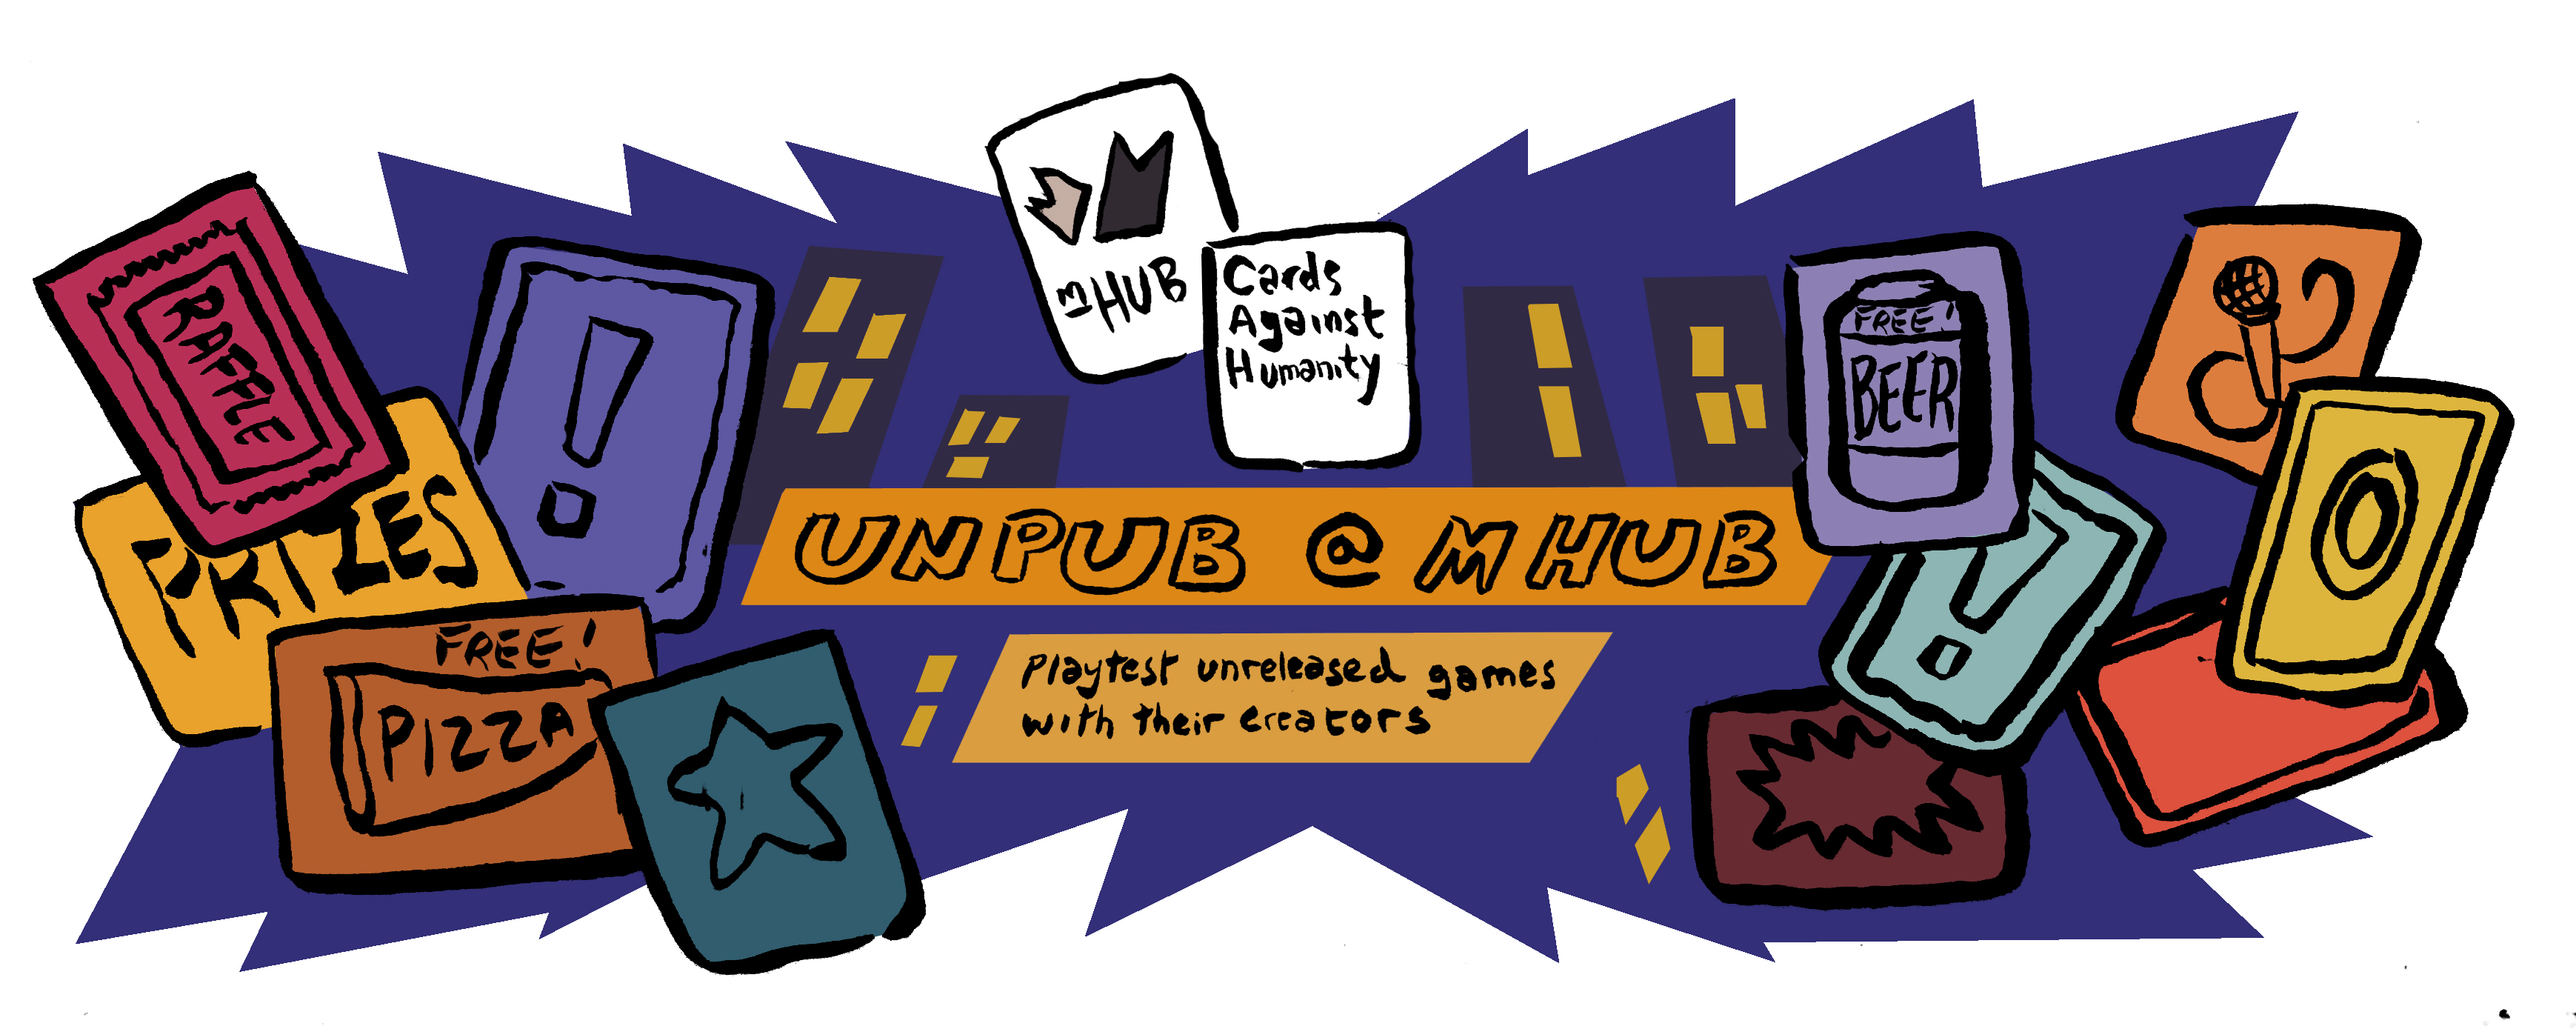 Cards Against Humanity | unPUB with mHUB